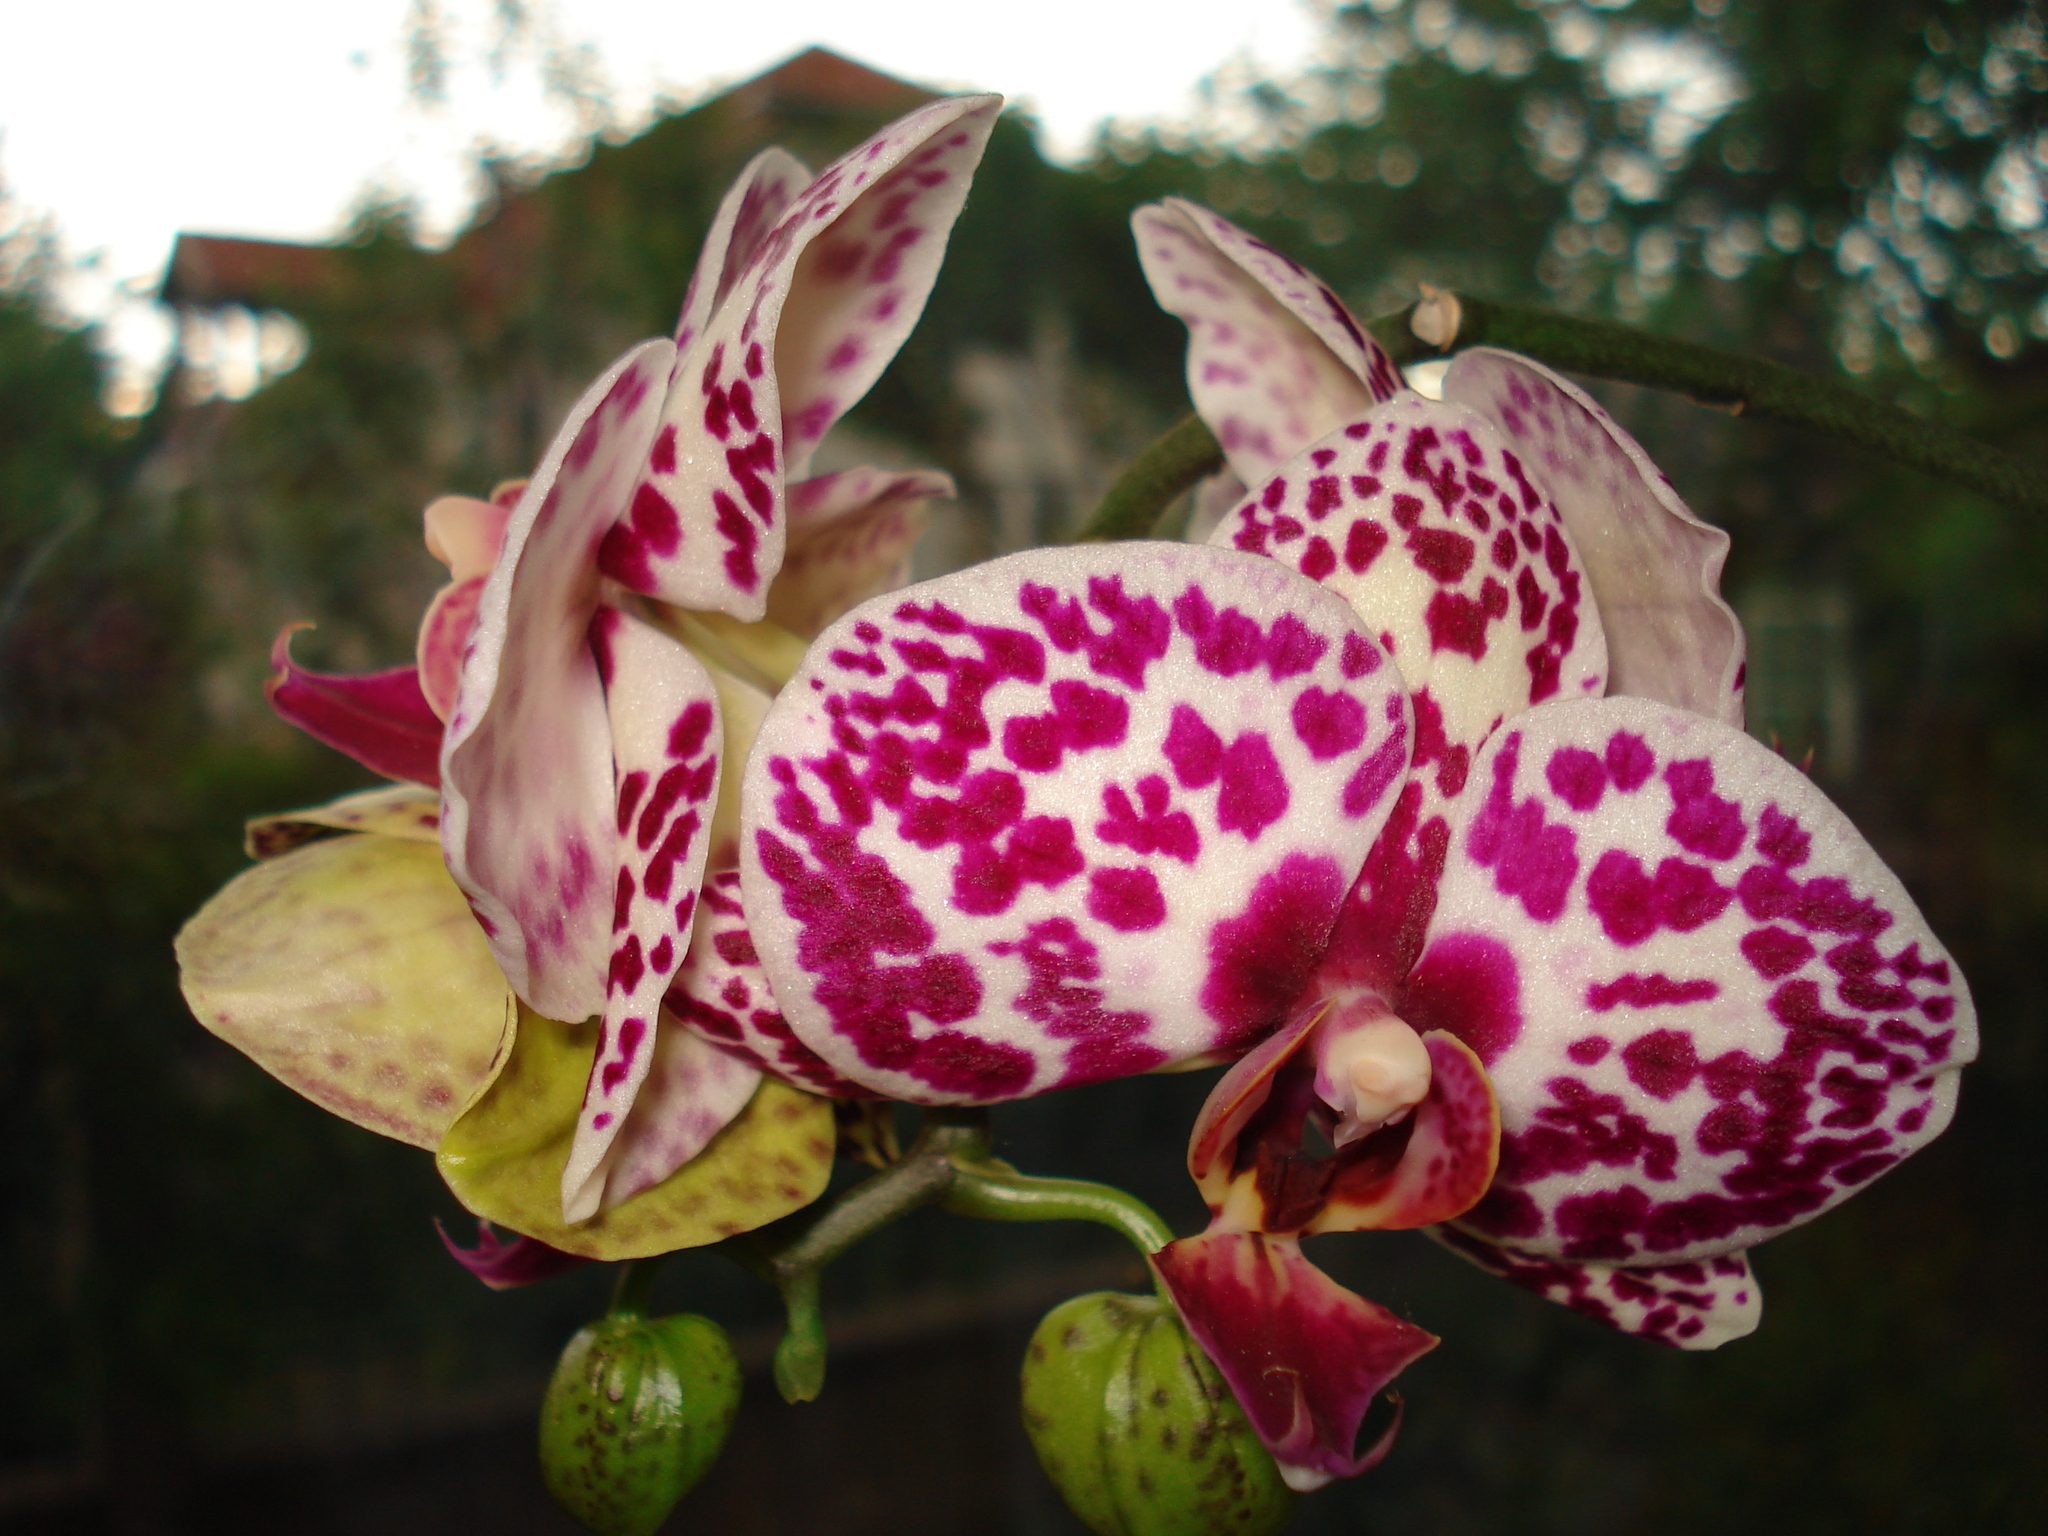 5 Interesting Facts About Orchids